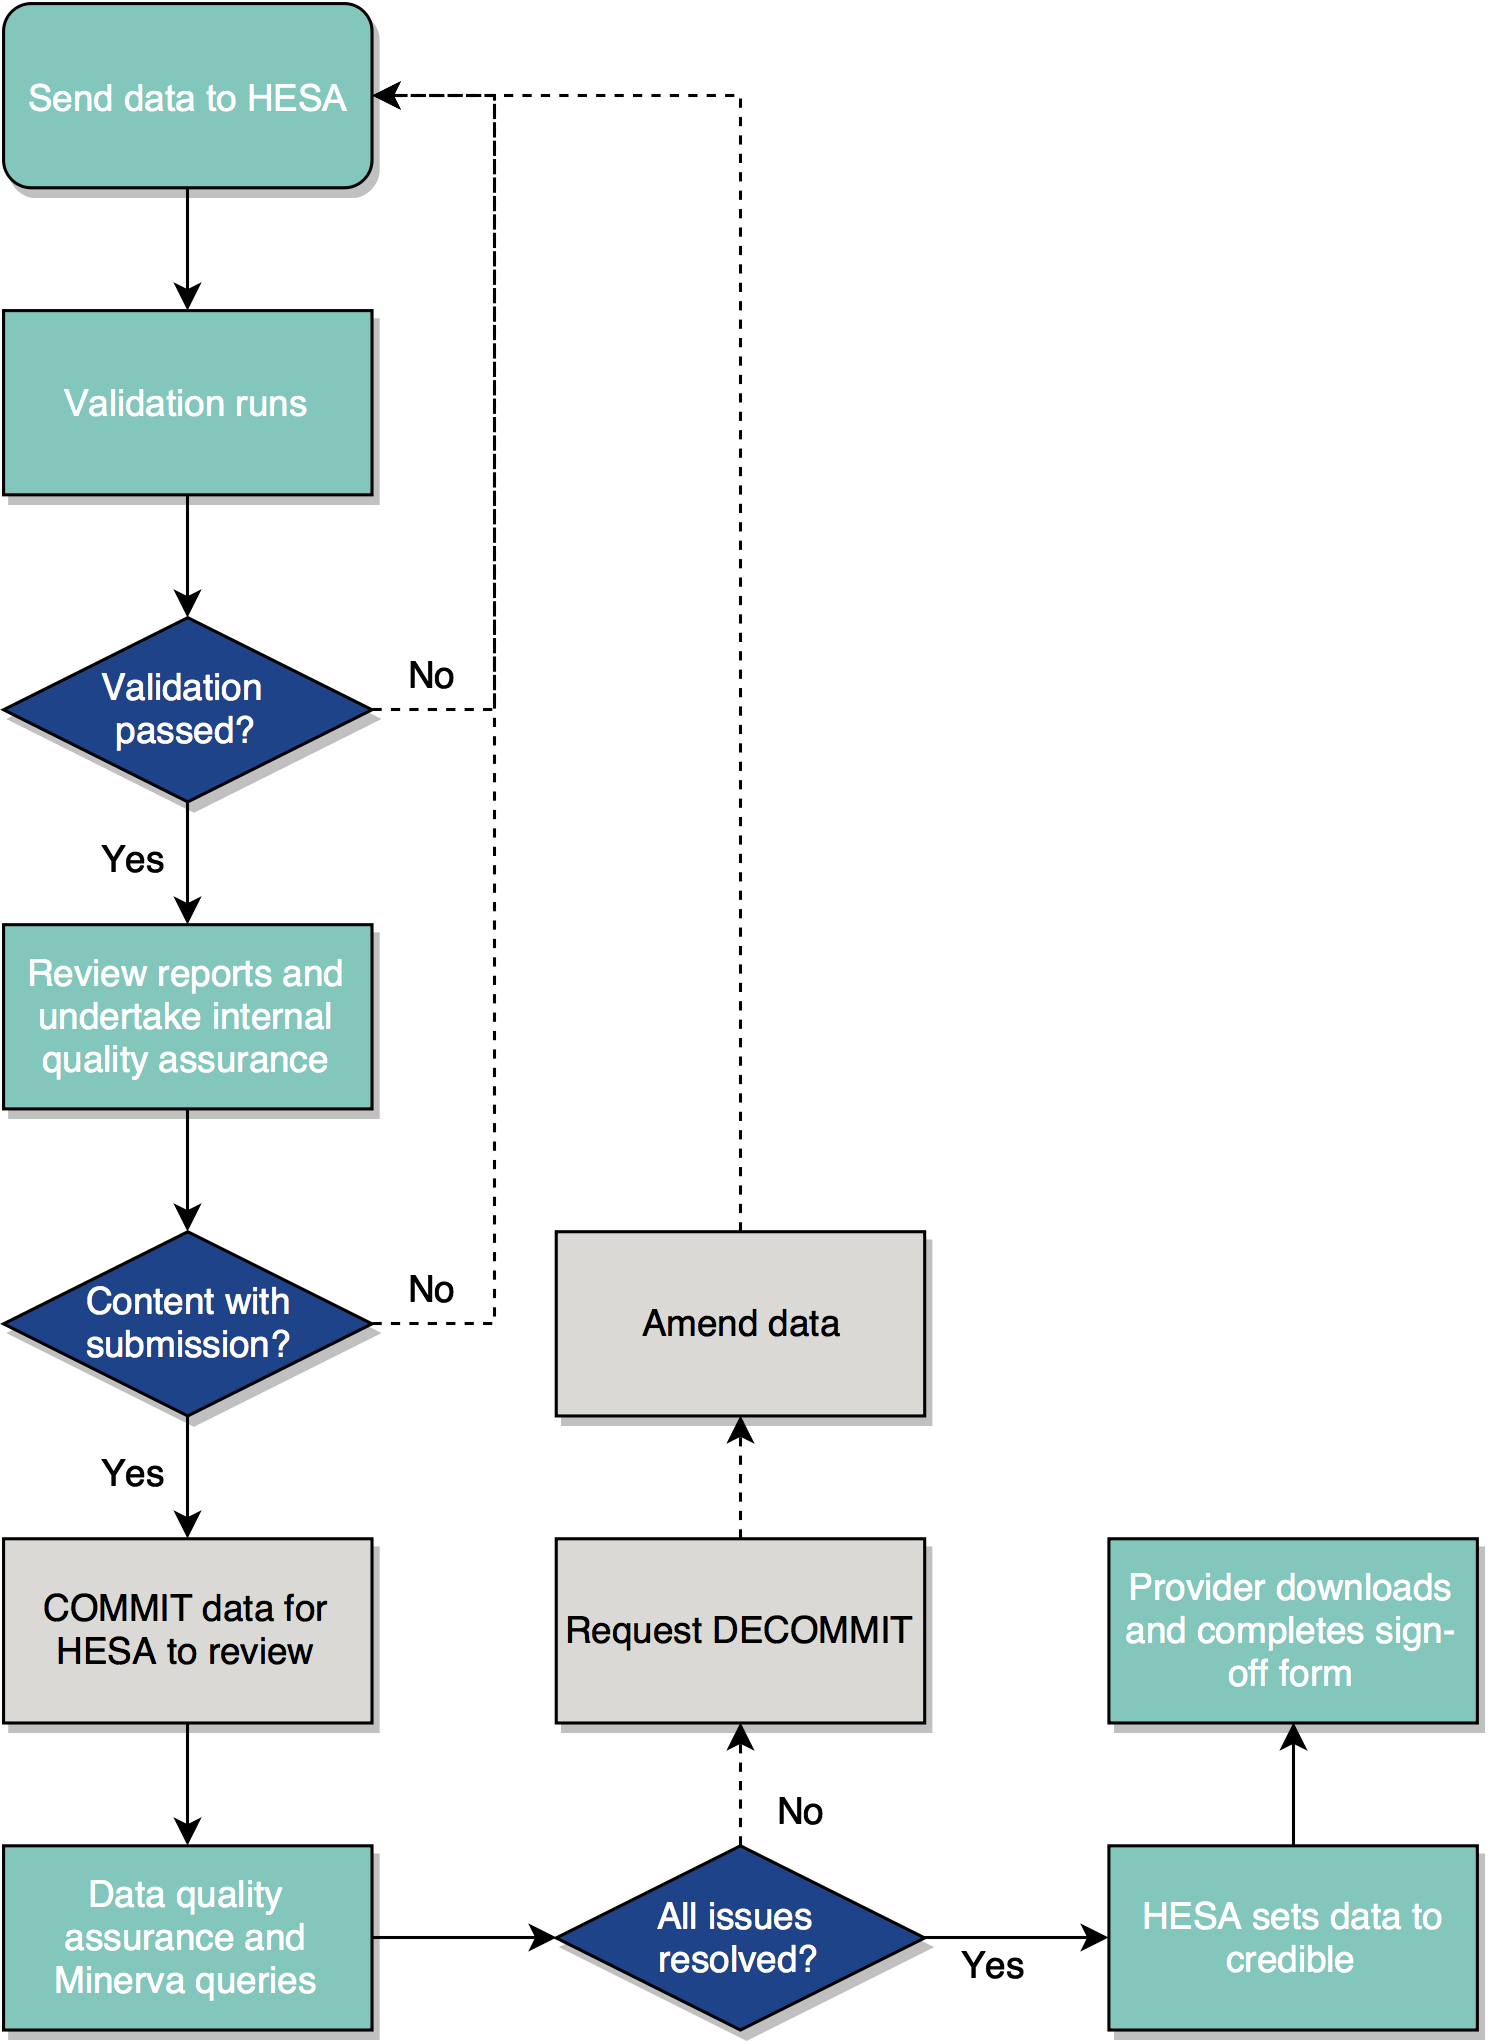 Diagram of the data submission process